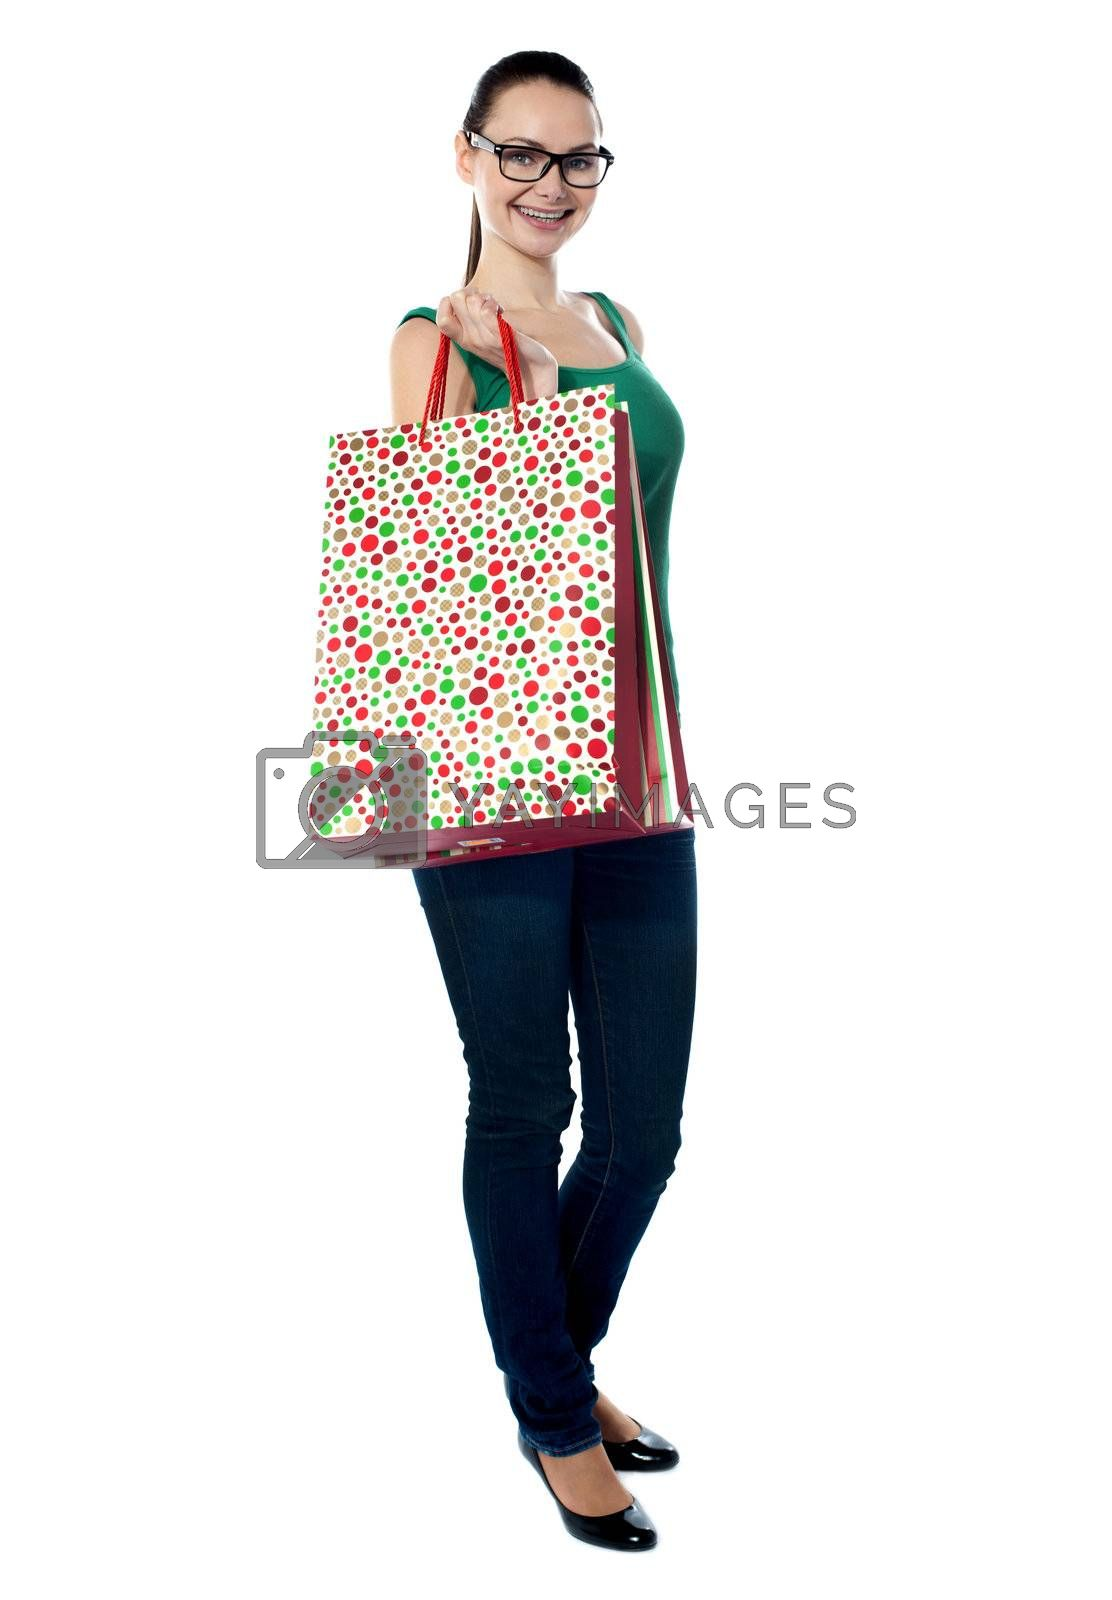 Stunning young woman carrying shopping bags